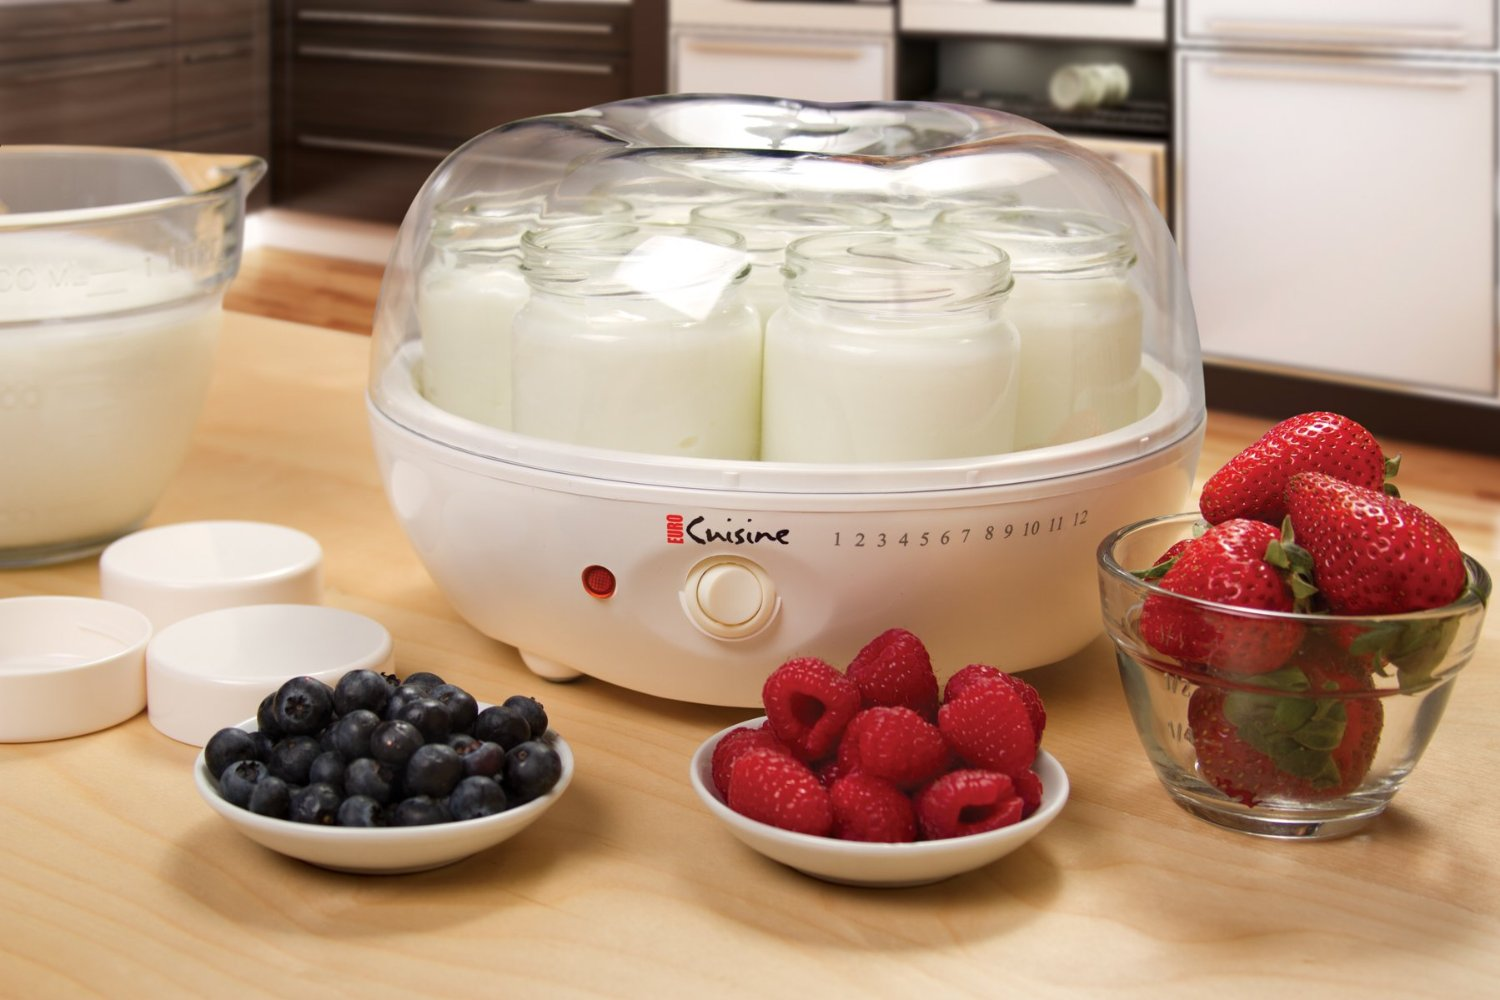 Highly Rated Euro Cuisine Yogurt Maker Only $21.99 (Regularly $49.99 – Best Price!)